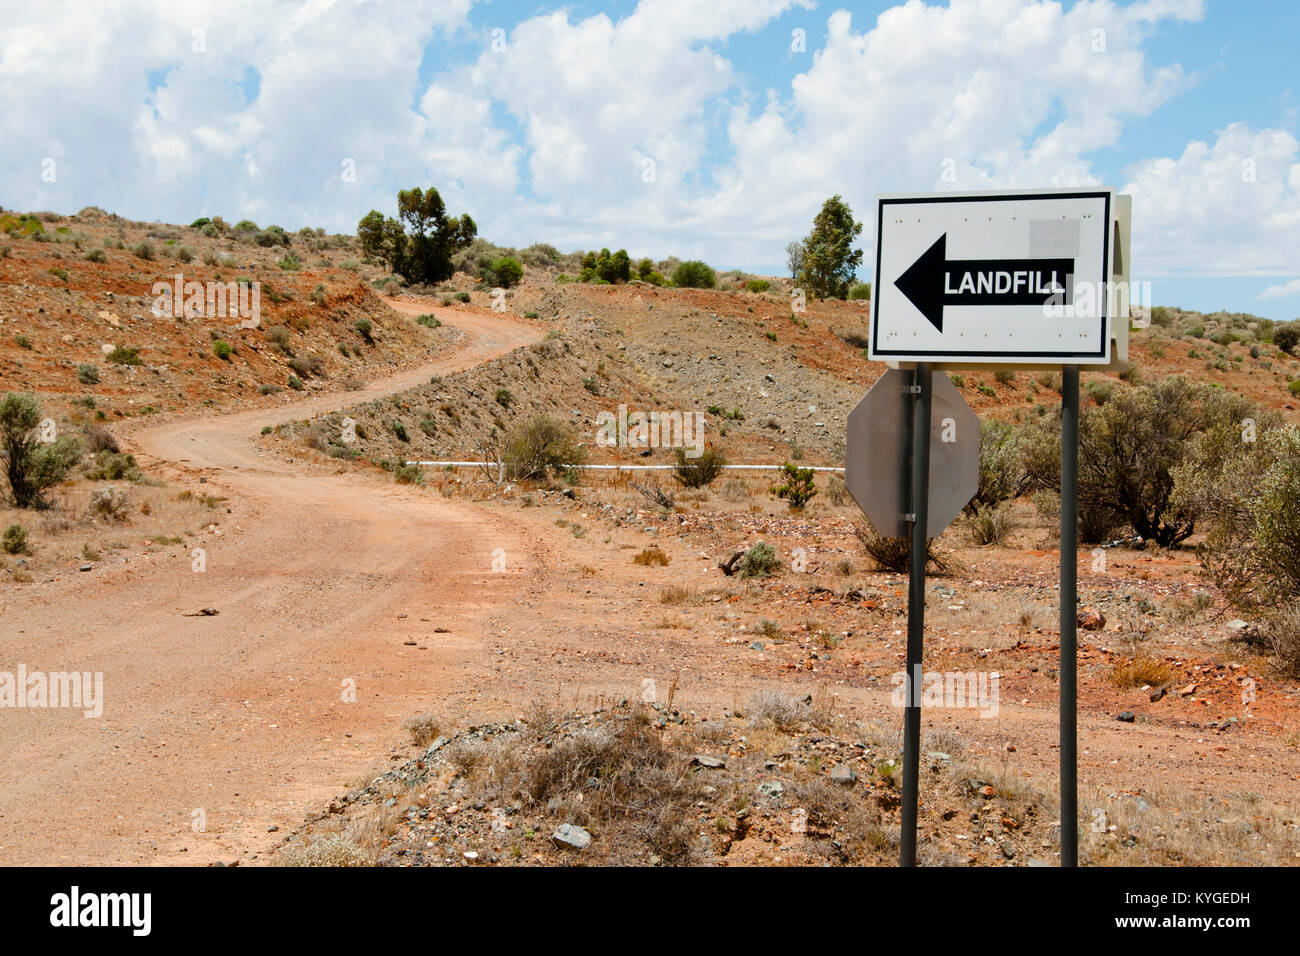 Landfill Road Sign - Stock Image